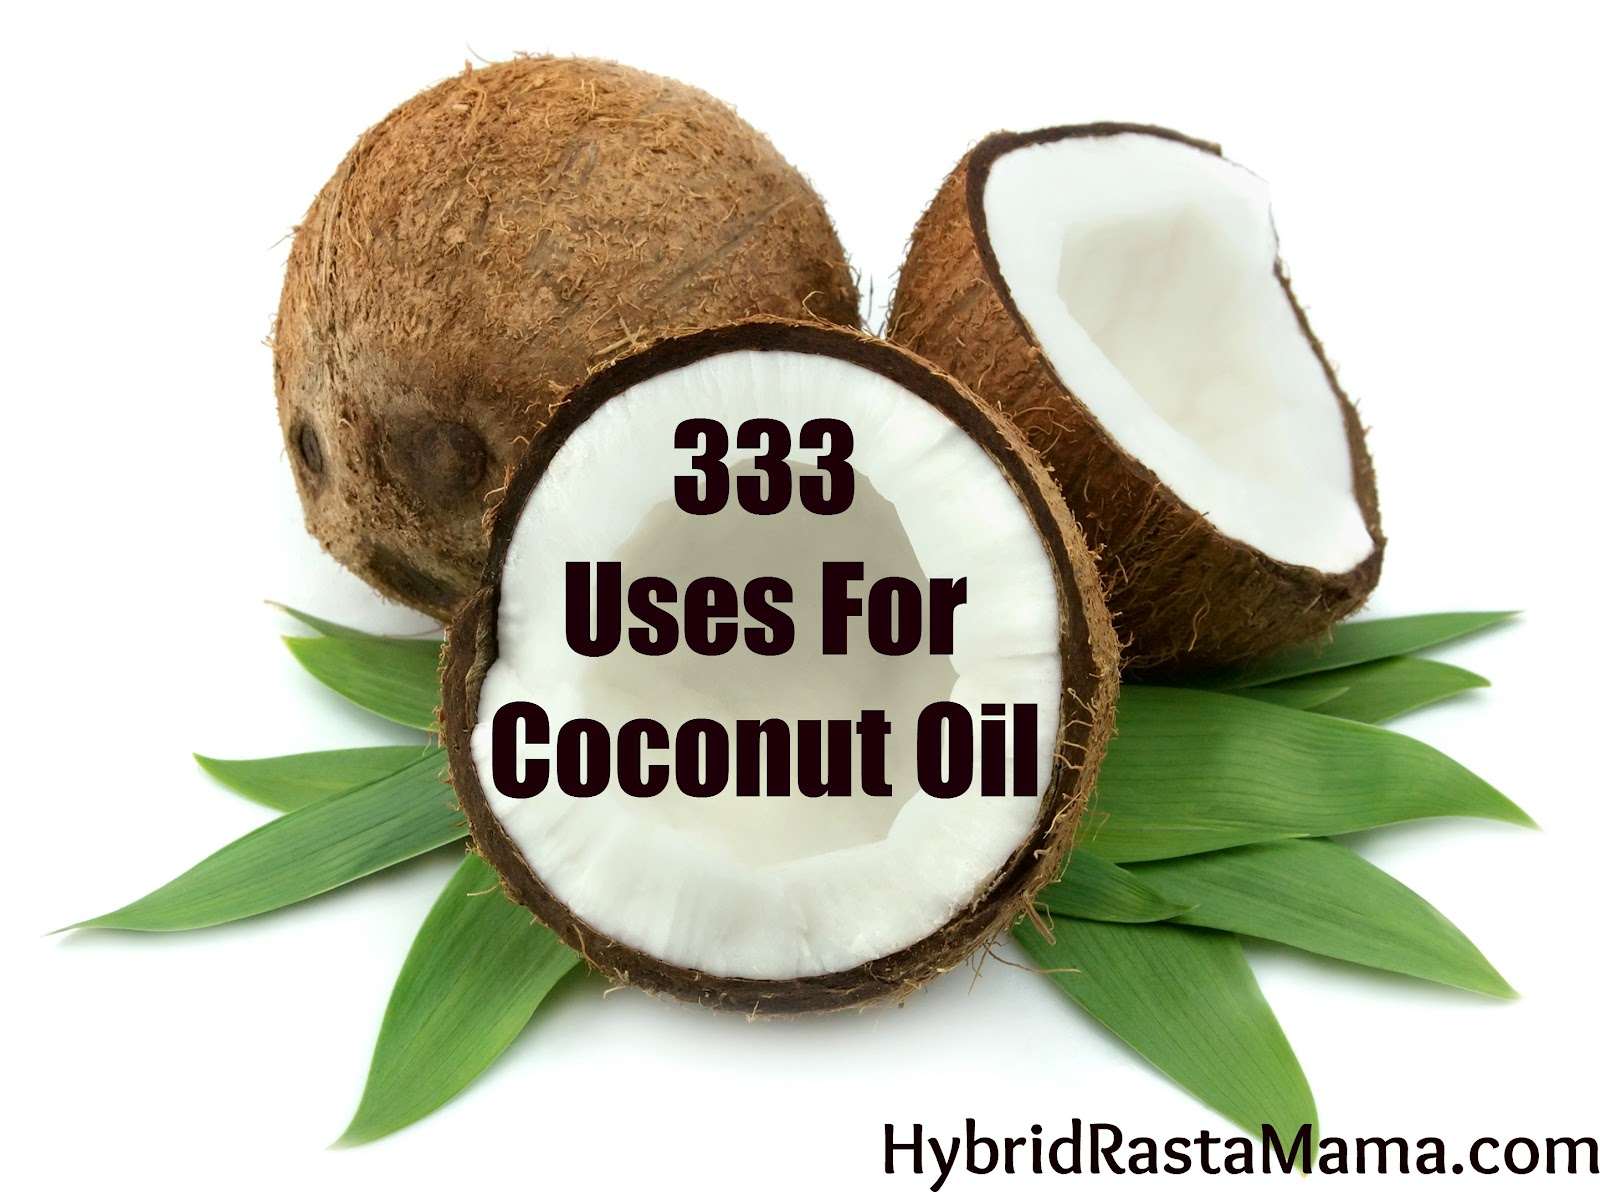 1000+ images about Coconut Oil on Pinterest